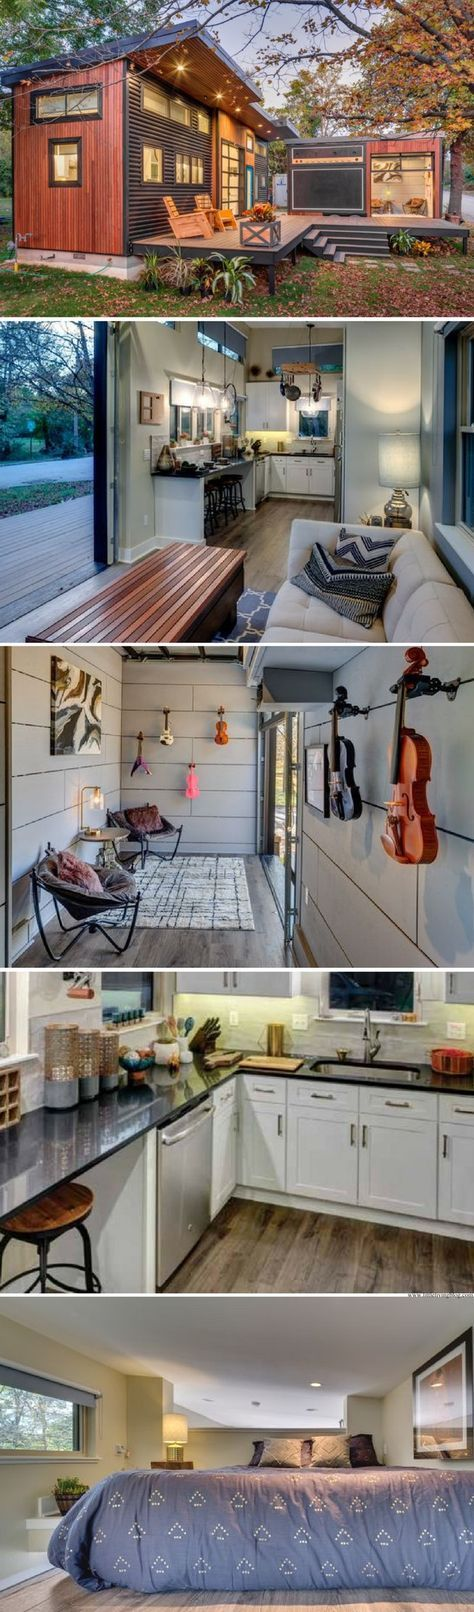 Container House The Amplified Tiny House 520 Sq Ft